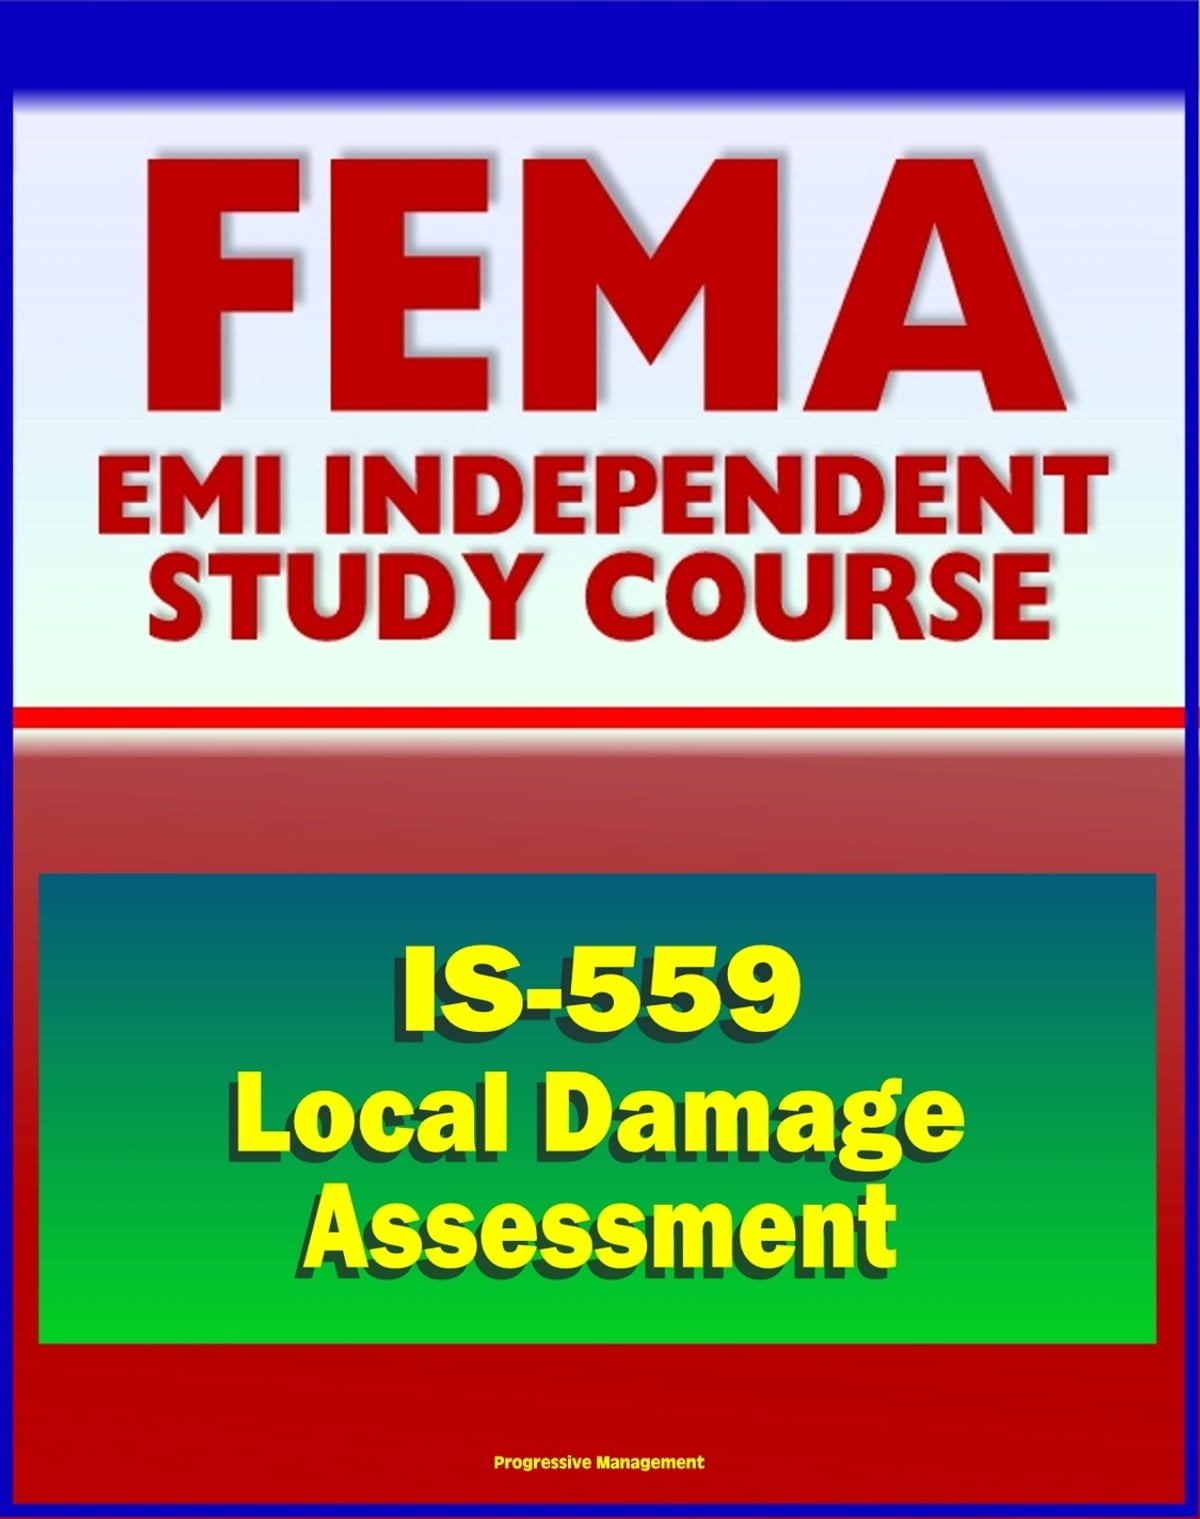 21st Century Fema Study Course Local Damage Assessment Is 559 Raisa Font College Navy M Identify Needs Set Priorities Drive Response And Recovery Actions Ebook De Progressive